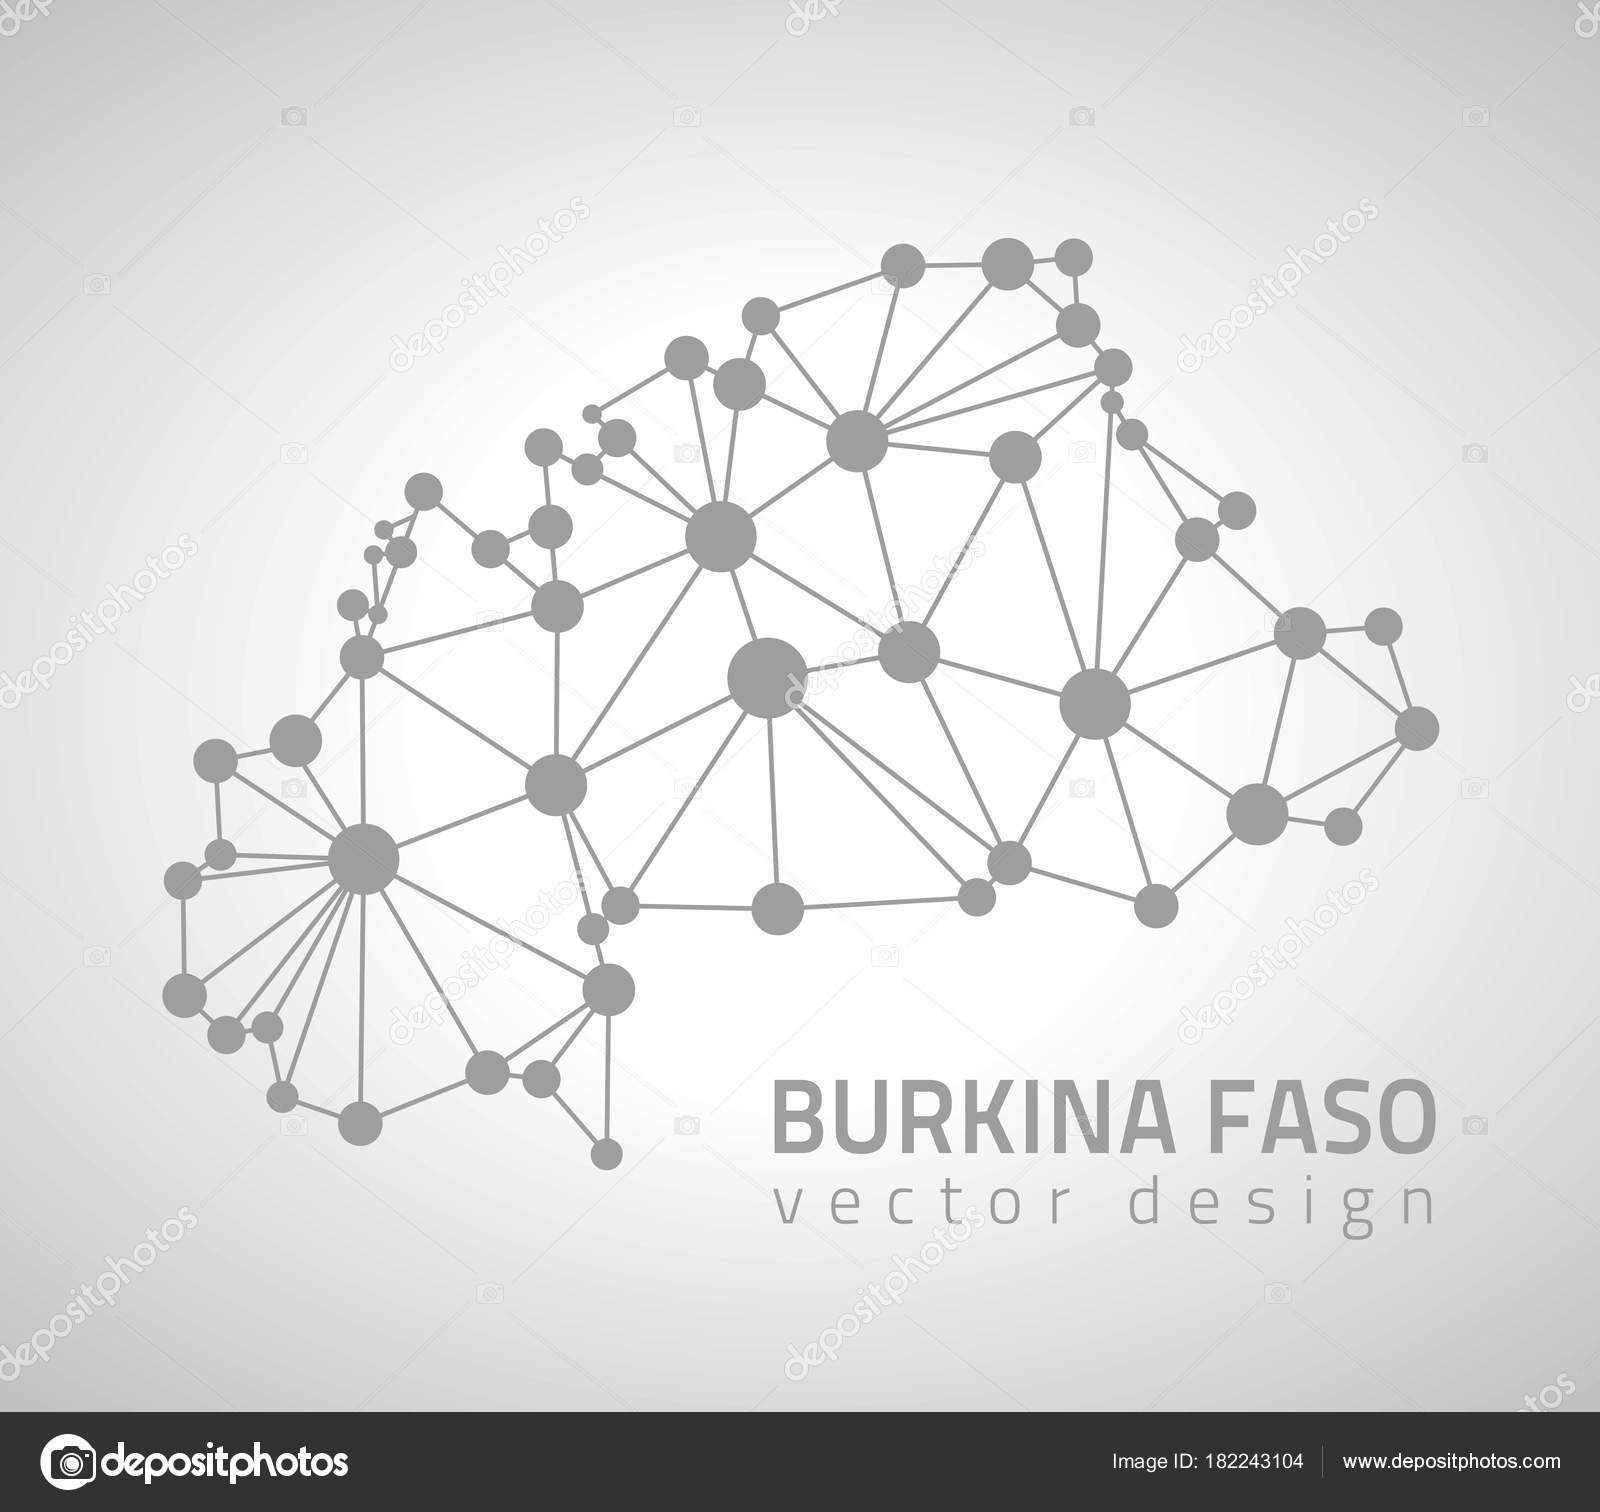 hight resolution of burkina faso grey vector dot contour triangle map stock illustration